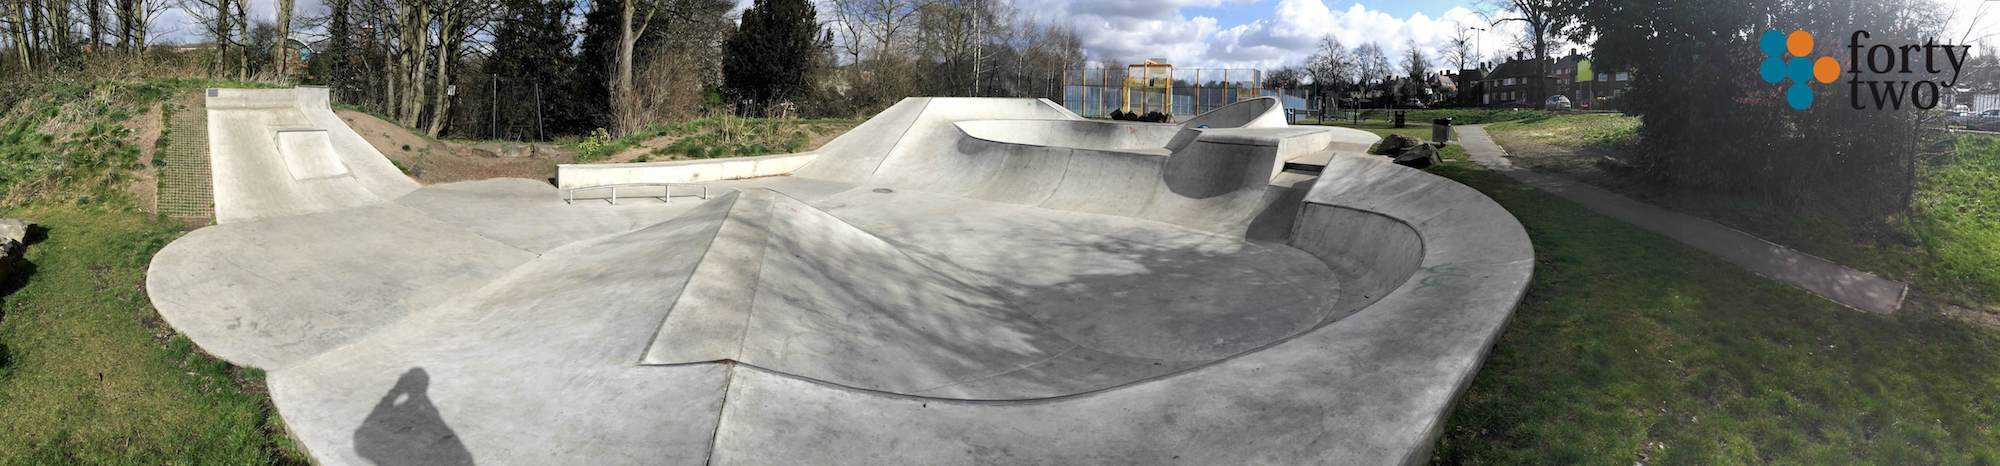 Valley Road Skatepark Nottingham Panarama